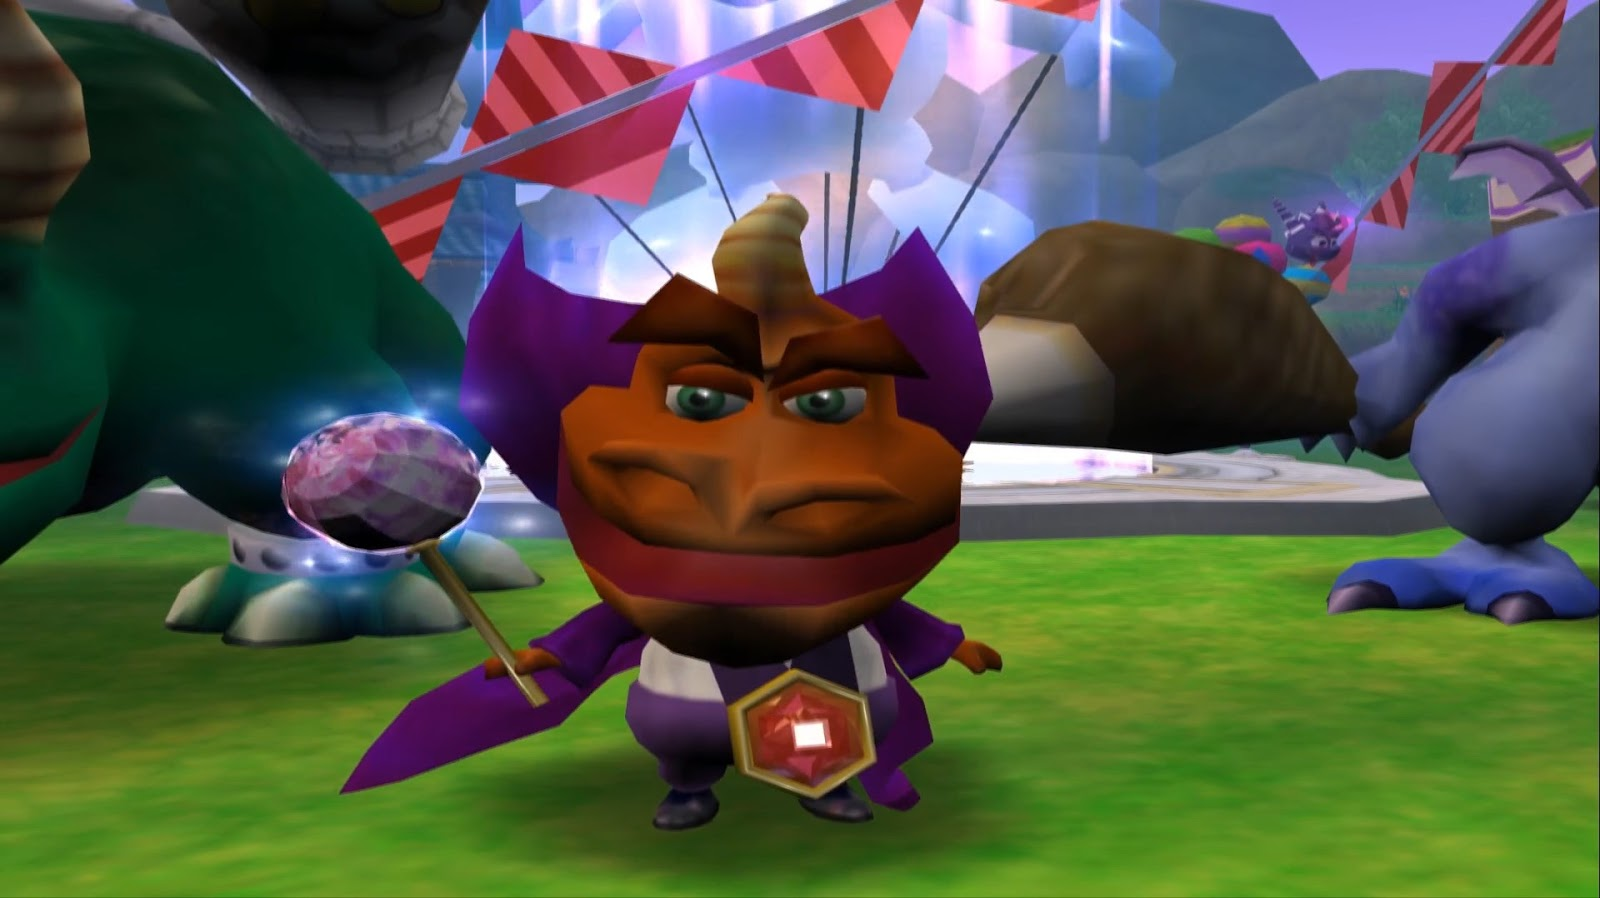 spyro enter the dragonfly 2002 the fourth part in spyro that